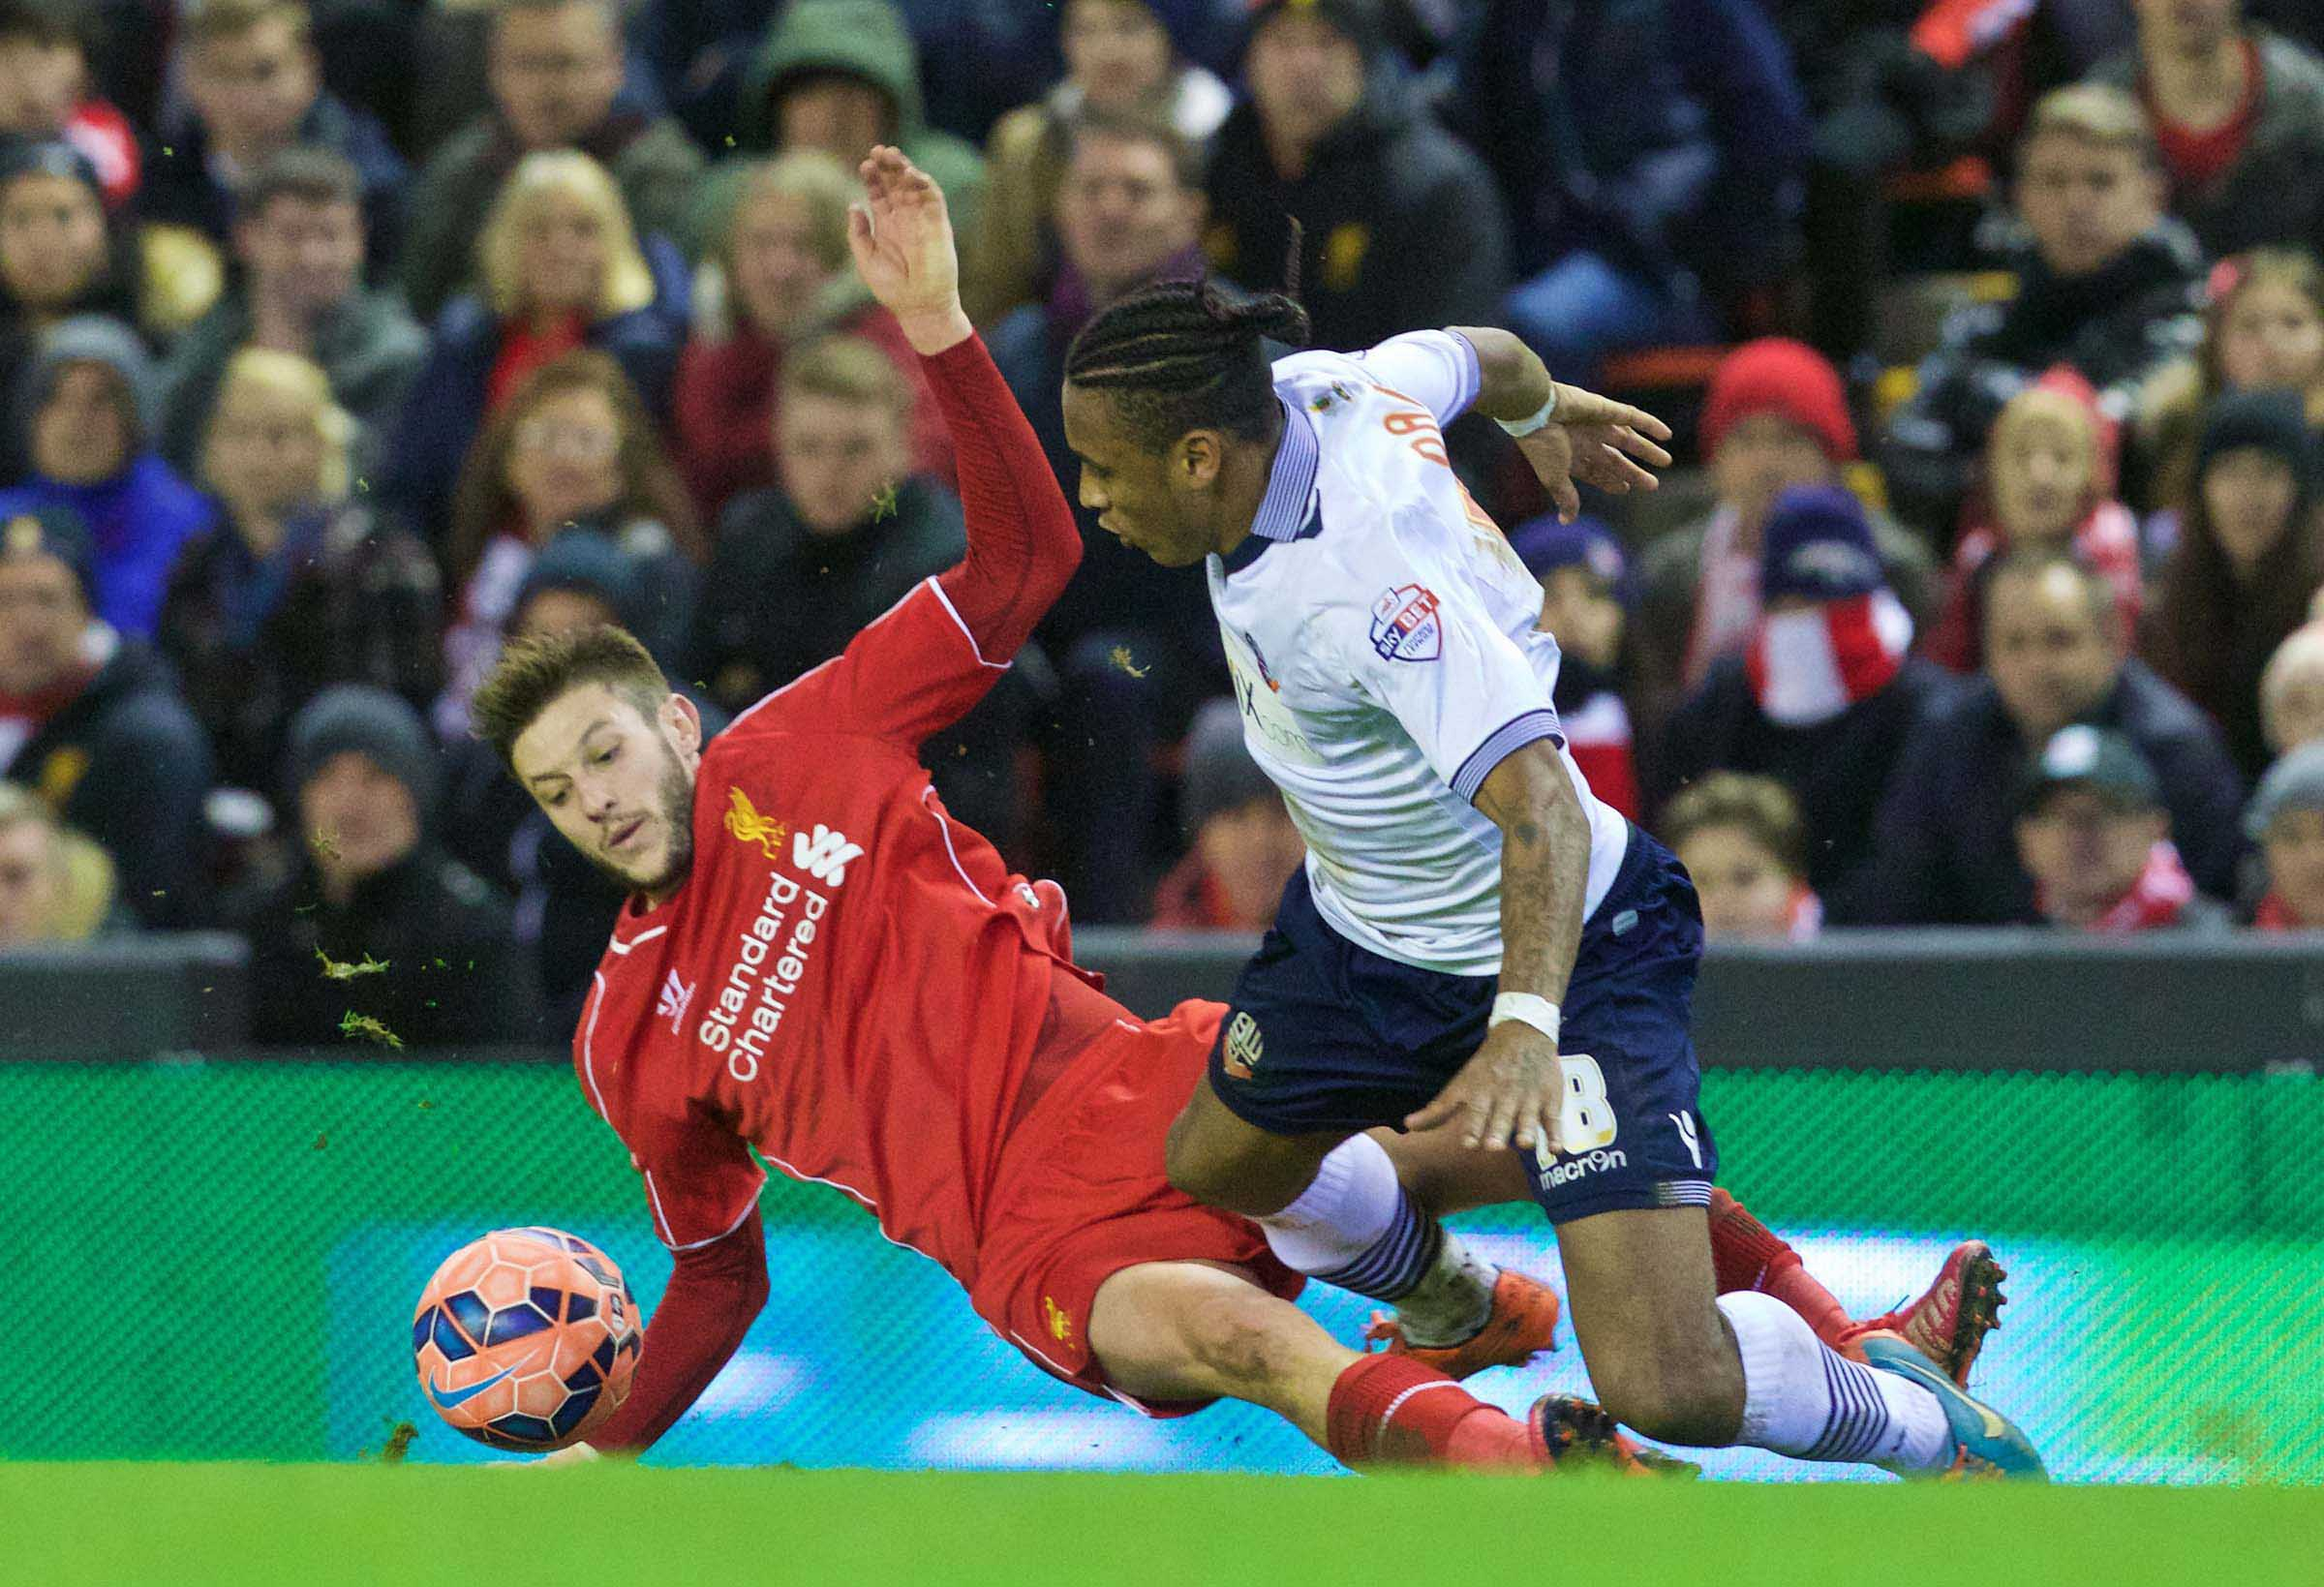 MATCH REVIEW: LIVERPOOL 0 BOLTON 0